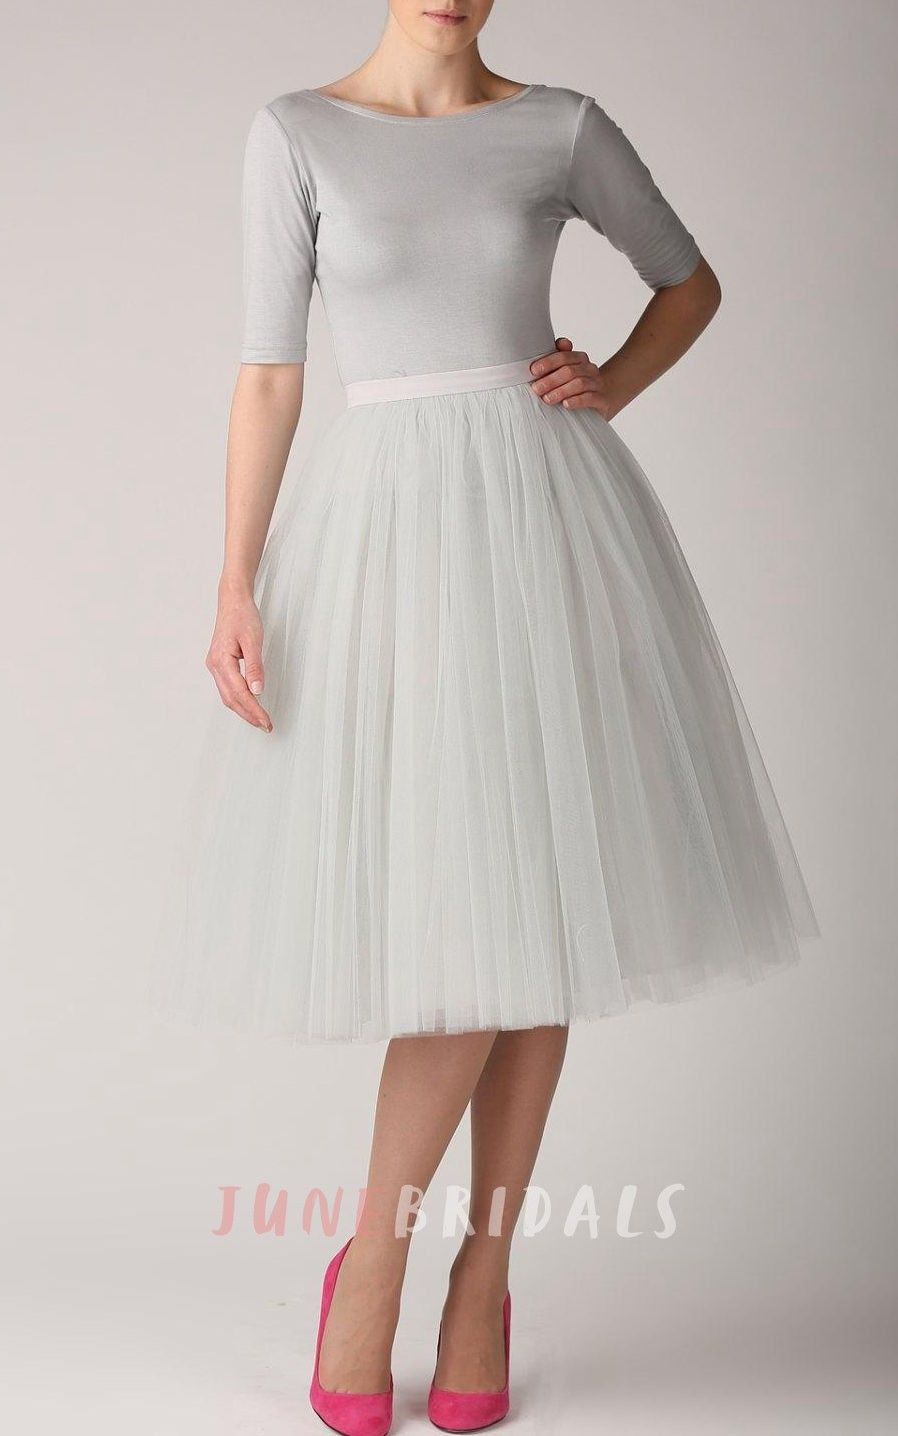 Casual Friday Link Up | Tulle skirts, Formal and Funky style